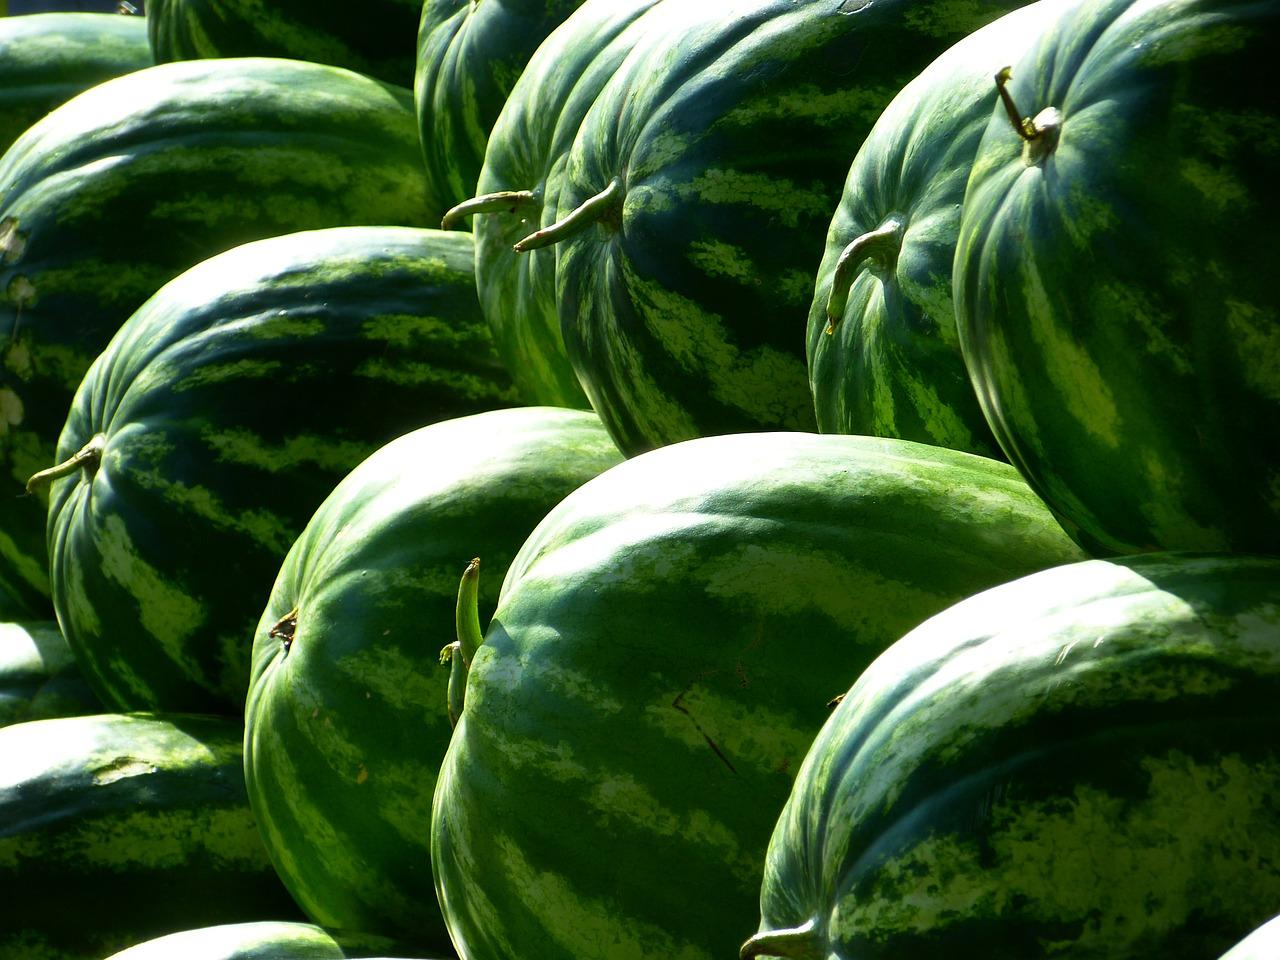 melons-197025_1280